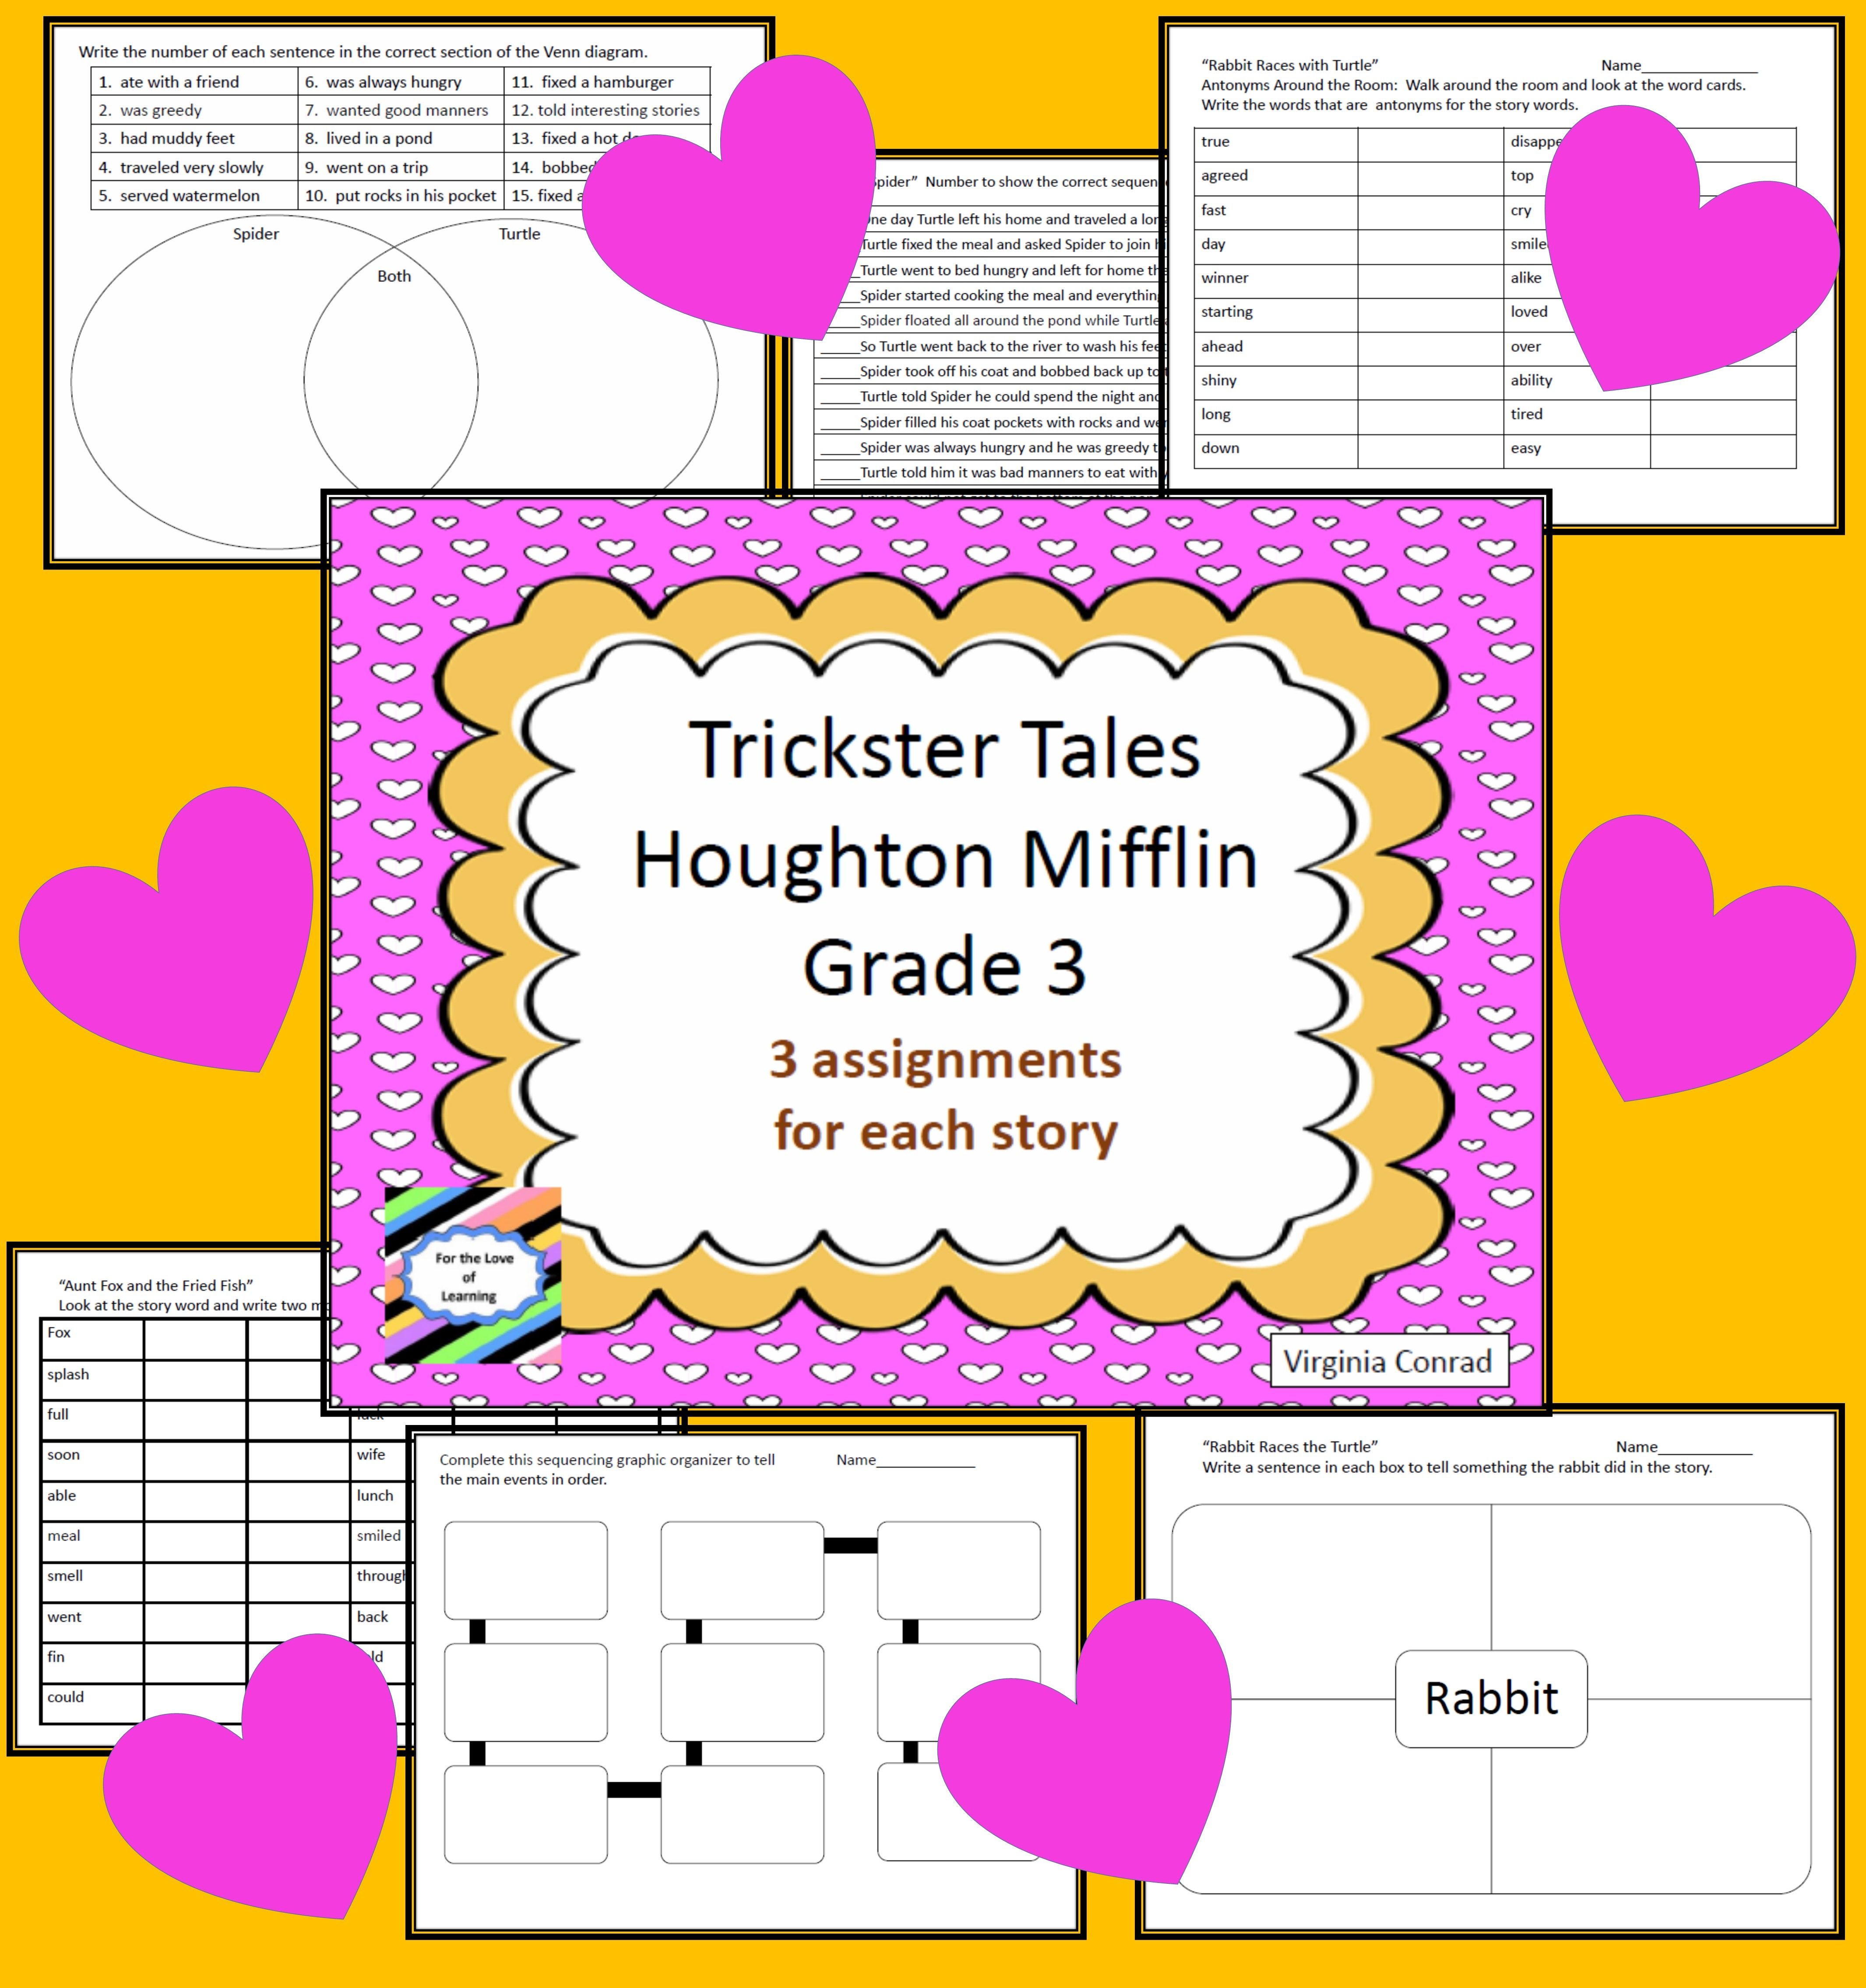 Trickster Tales 9 Activities Houghton Mifflin Grade 3 5th Grade Social Studies Worksheets And Activities For The Fun Trickster Tales Unit In Third Grad Houghton Mifflin